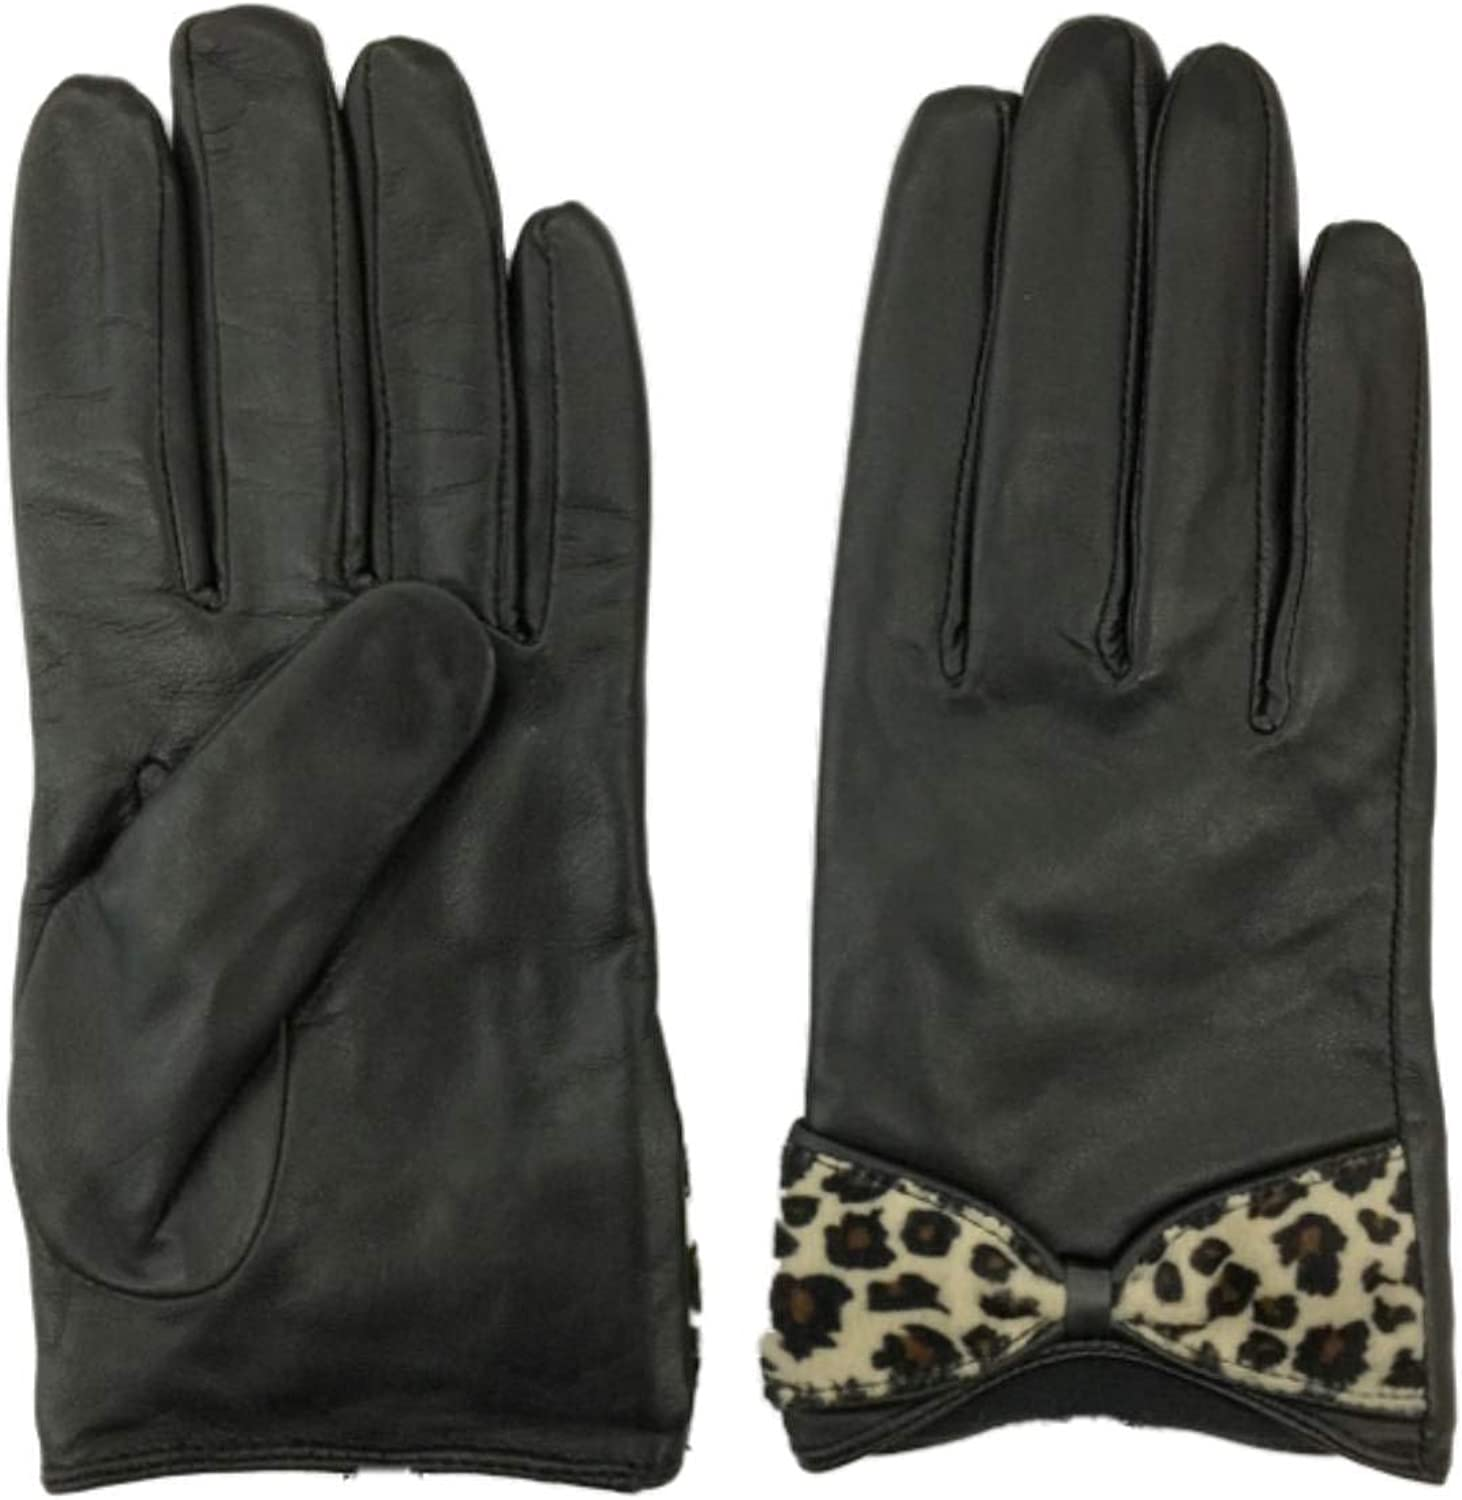 Womens Black & Brown Leopard Print Leather Gloves Lined Large/X-Large